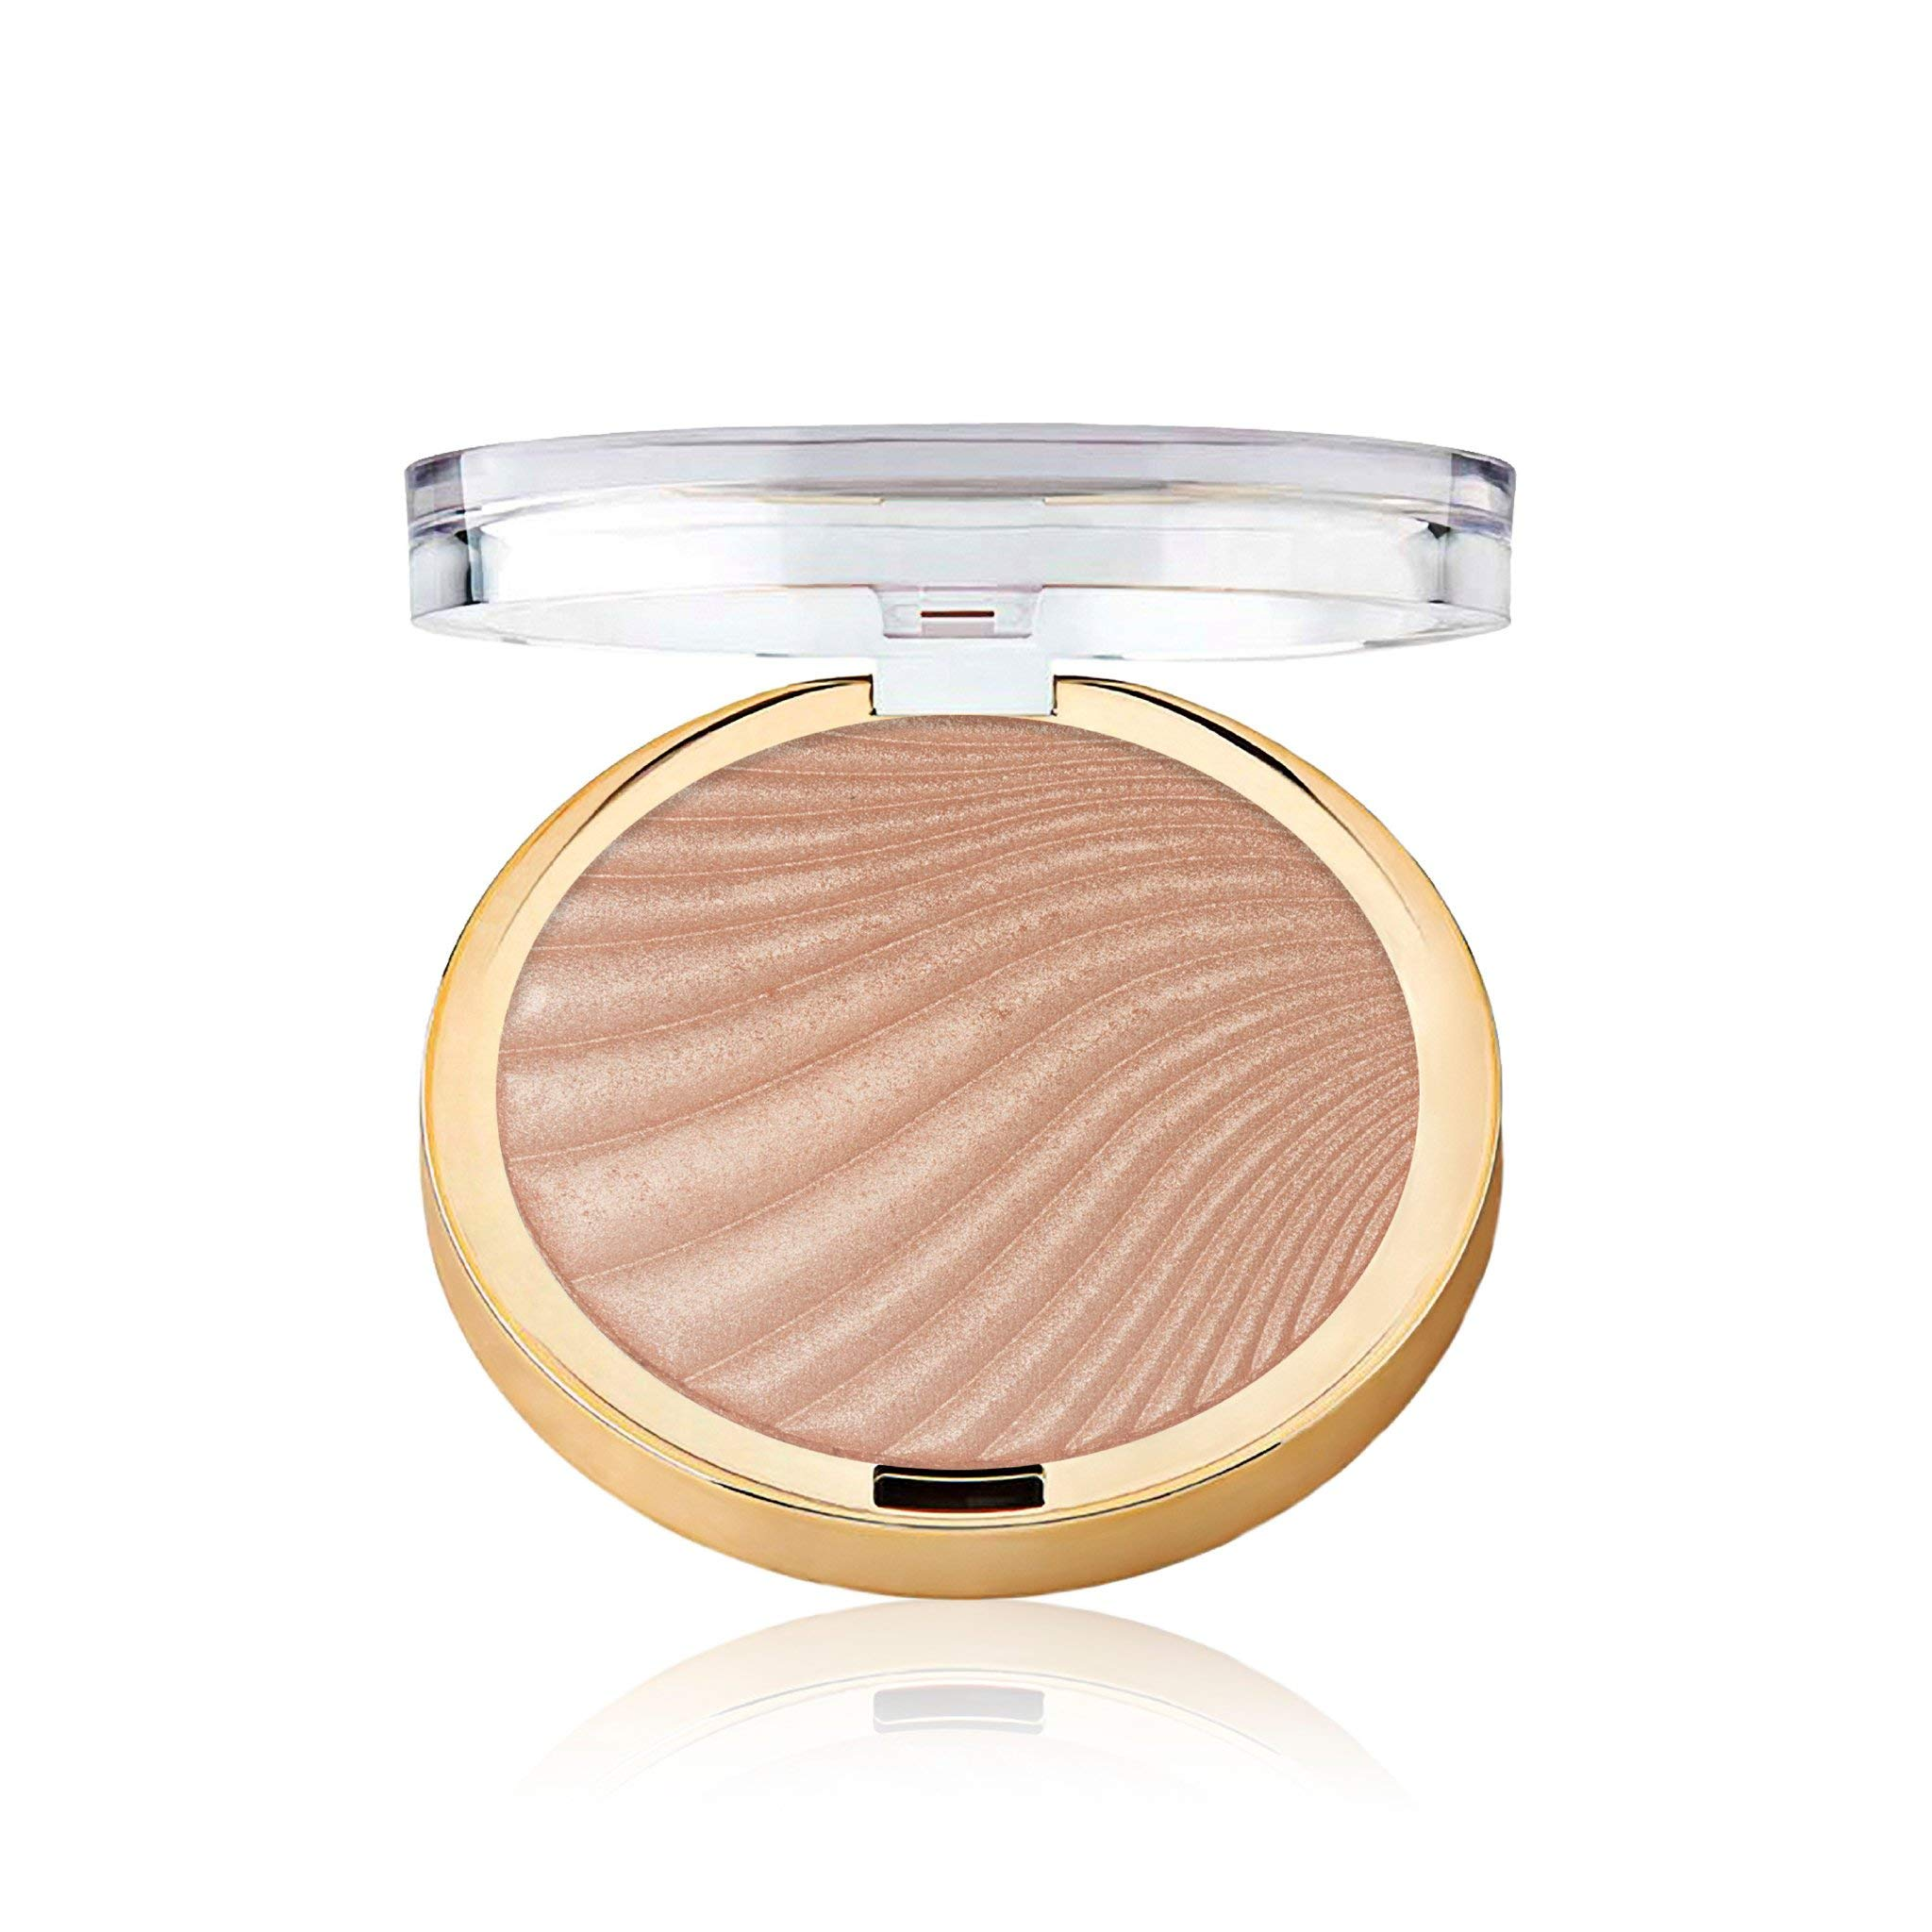 Milani Strobelight Instant Glow Powder - Dayglow (0.3 Ounce) Vegan, Cruelty-Free Face Highlighter - Shape, Contour & Highlight Features with Shimmer Shades